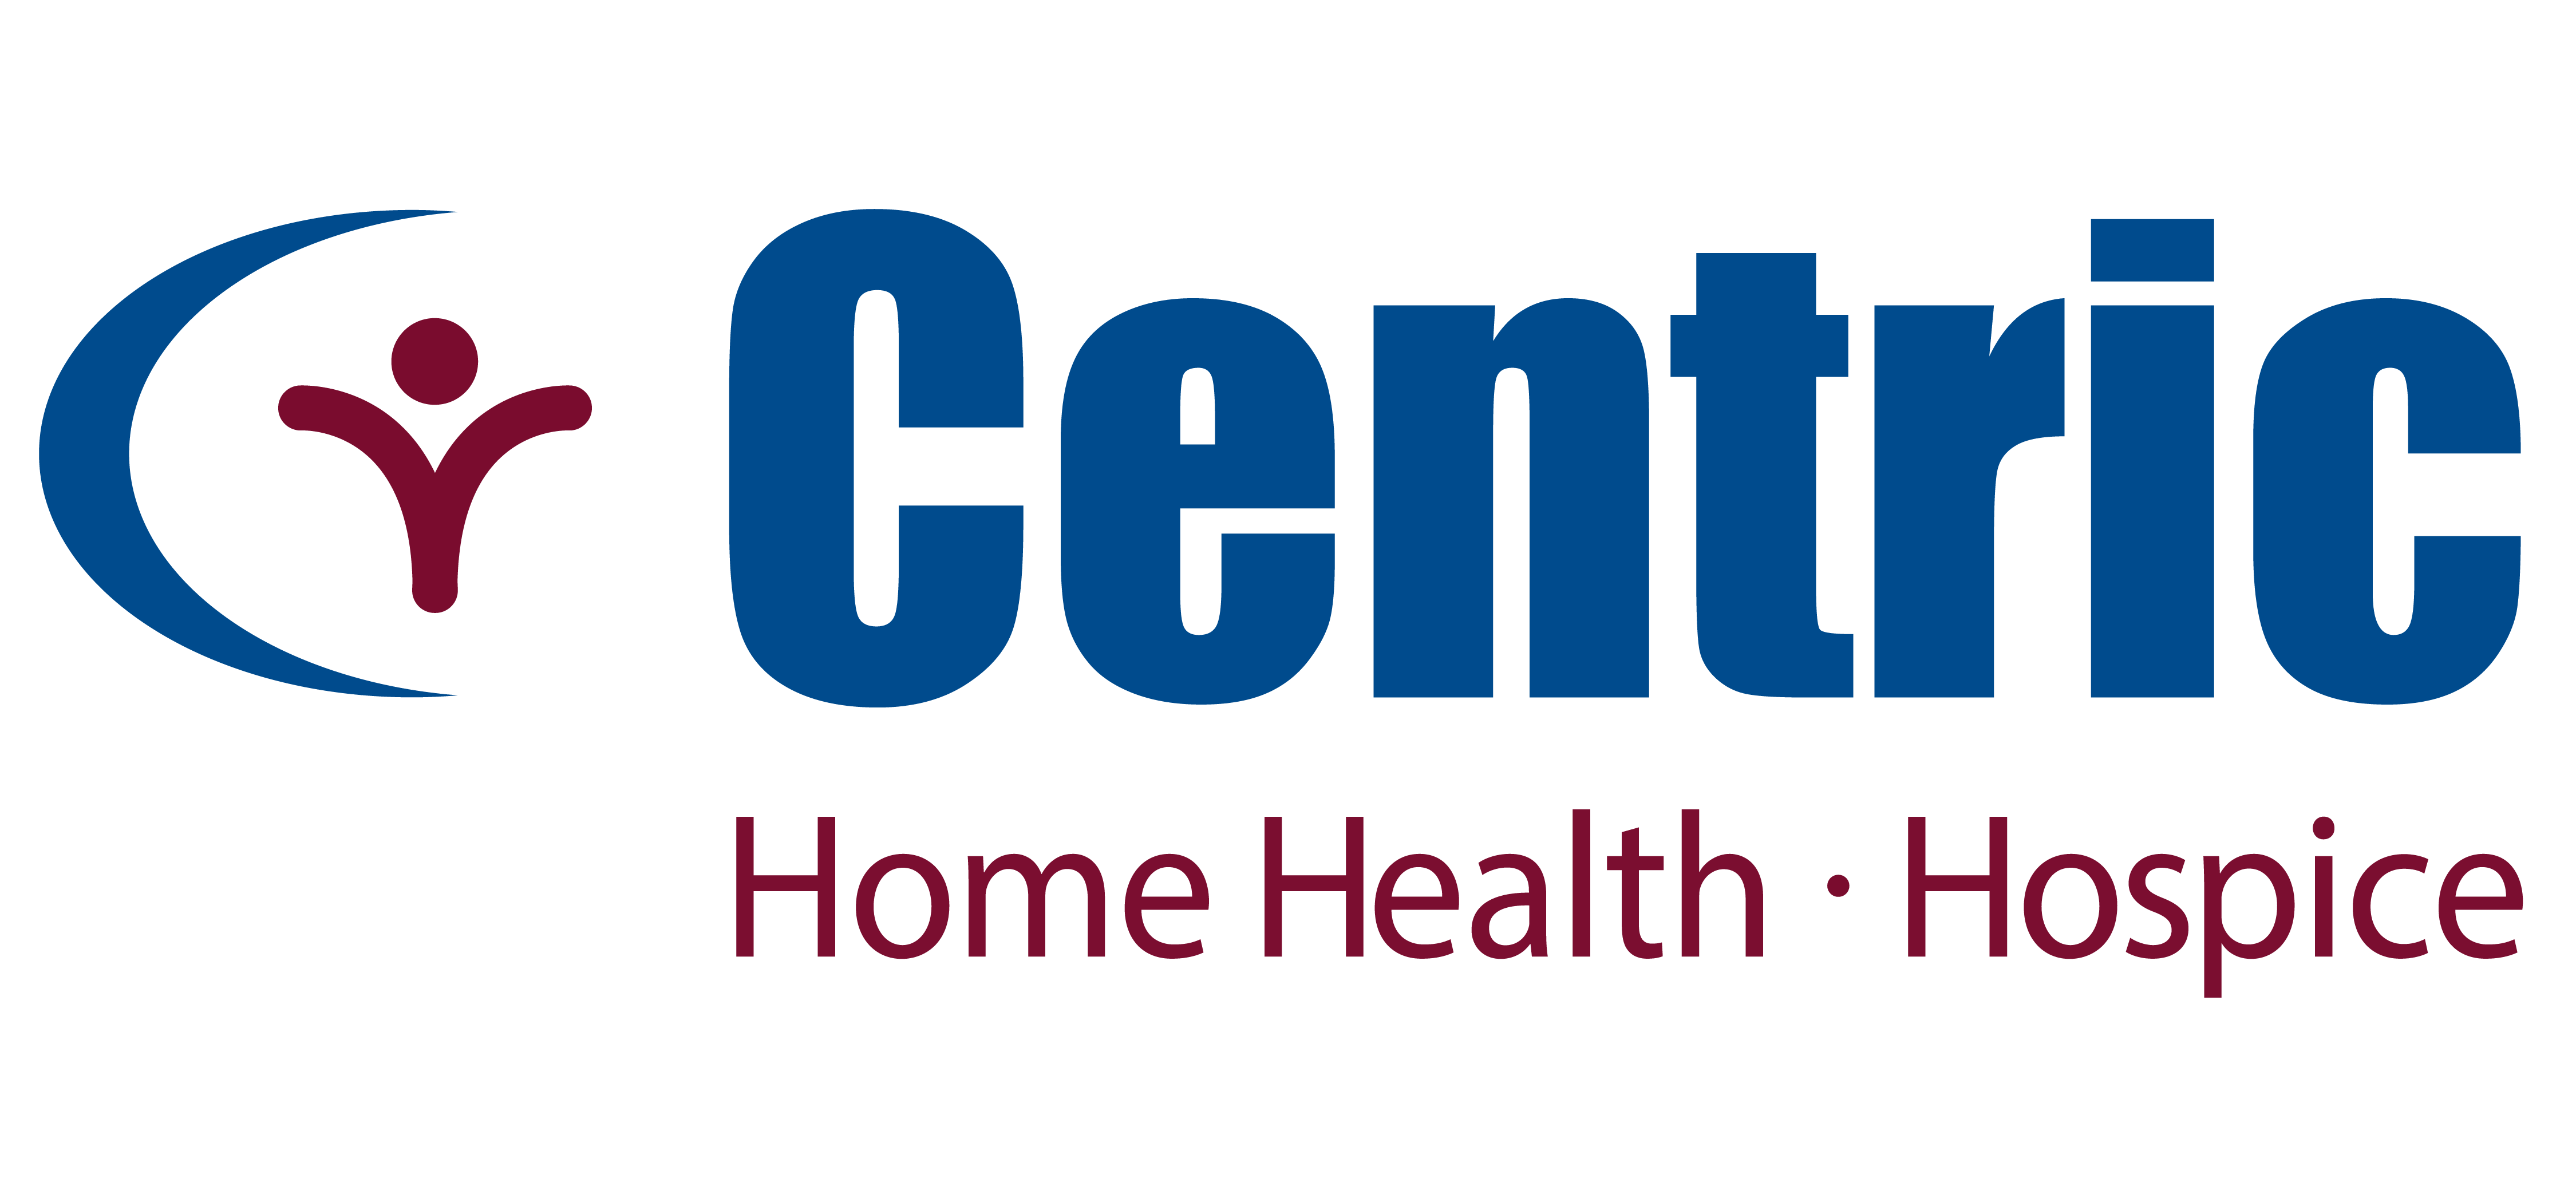 Centric Home Health and Hospice